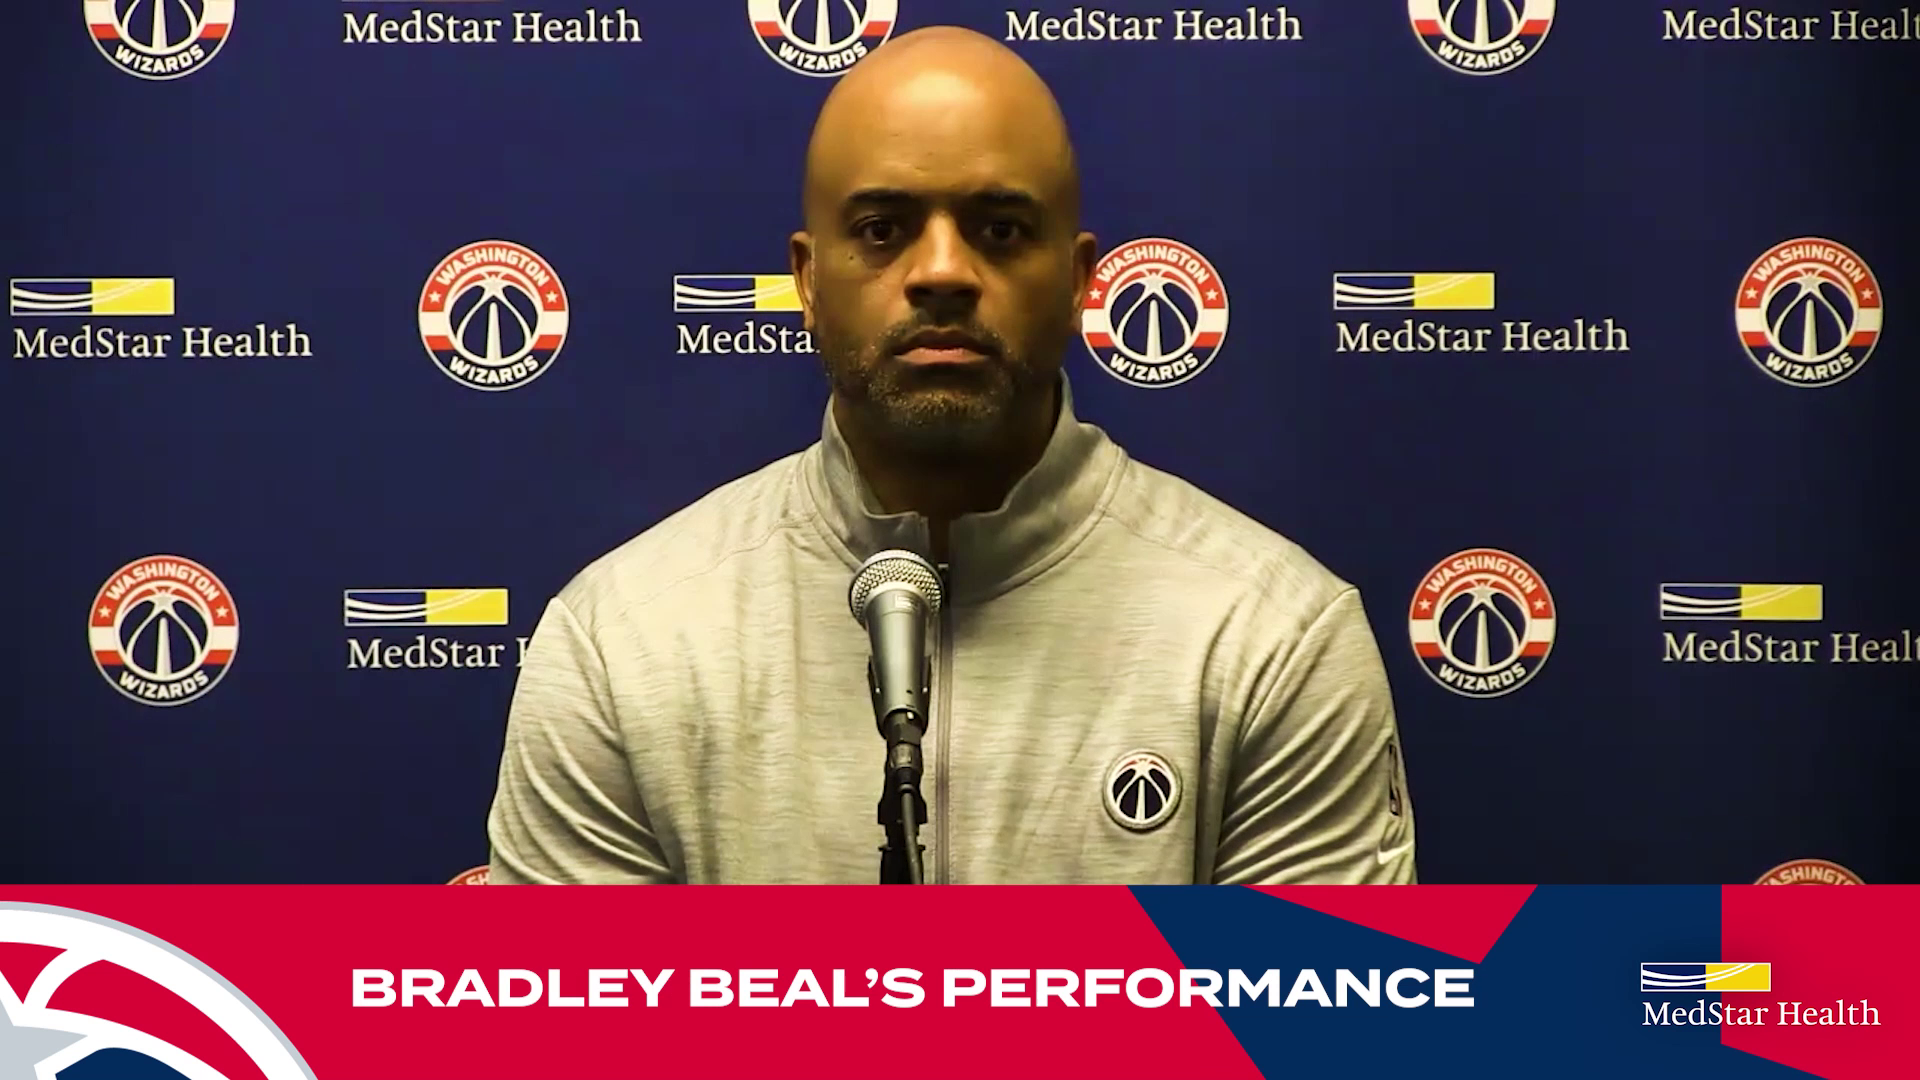 Wes Unseld Jr. Postgame Media Availability - 10/25/21